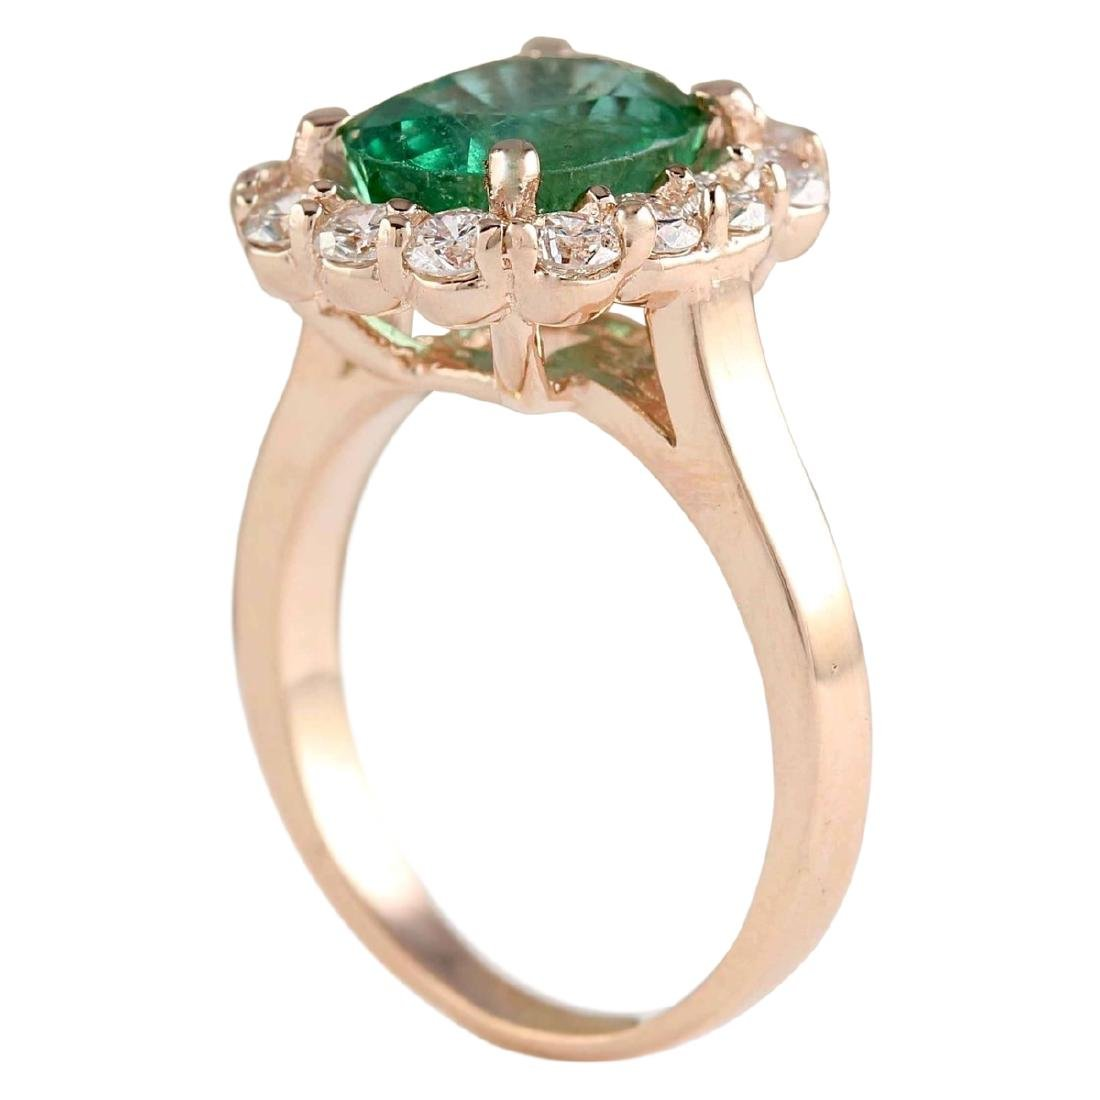 4.18 CTW Natural Emerald And Diamond Ring In 18K Rose - 3